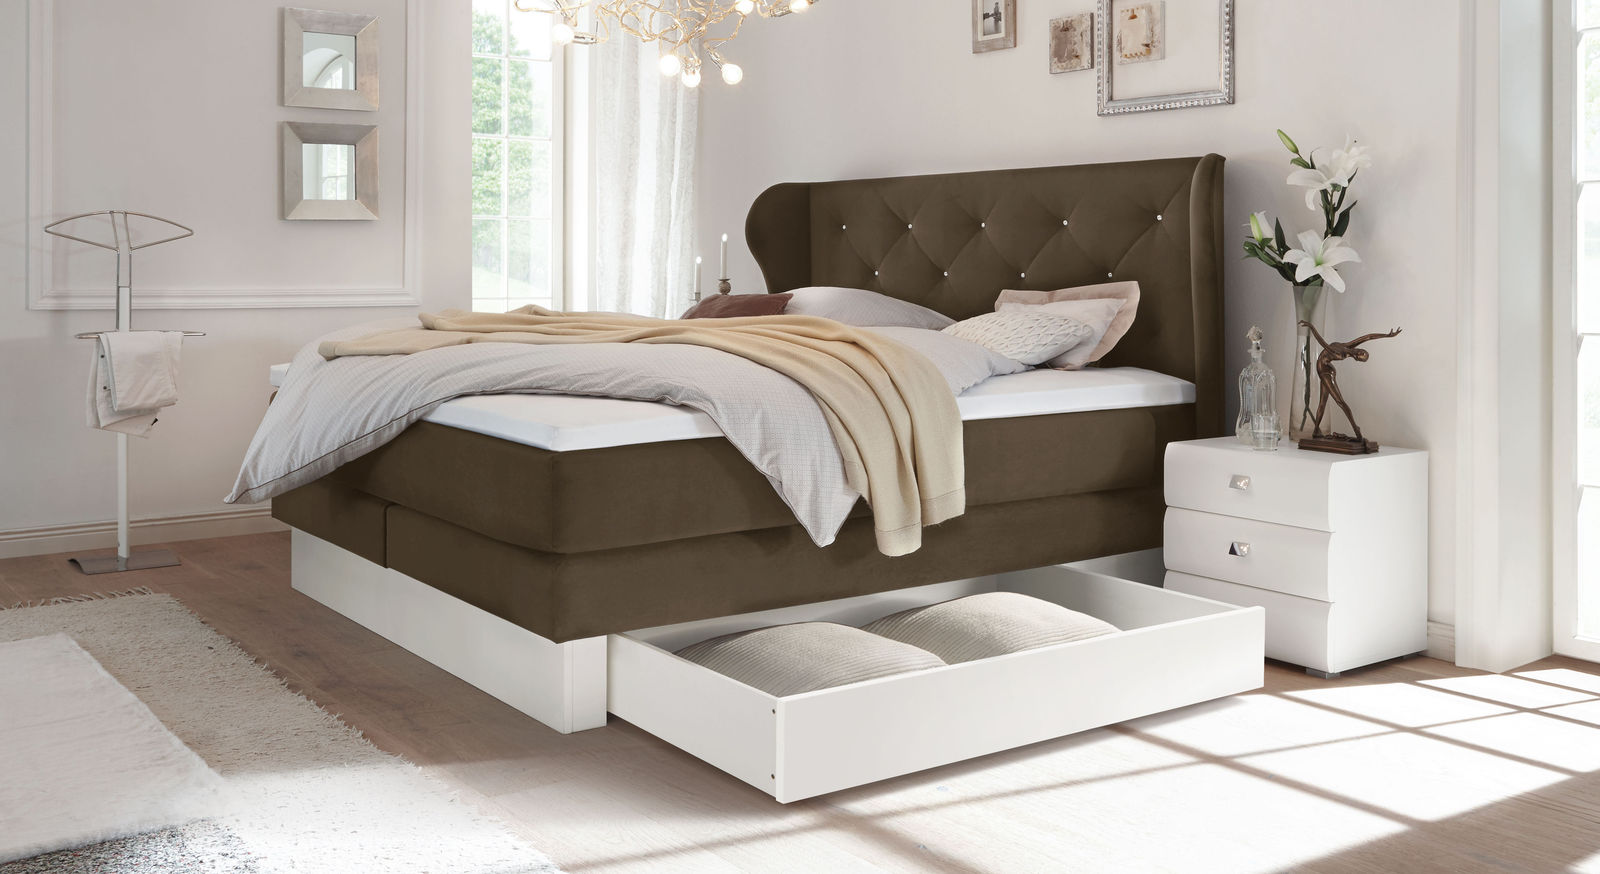 schubkasten boxspringbett samtbezug mit swarovskisteinen belica. Black Bedroom Furniture Sets. Home Design Ideas